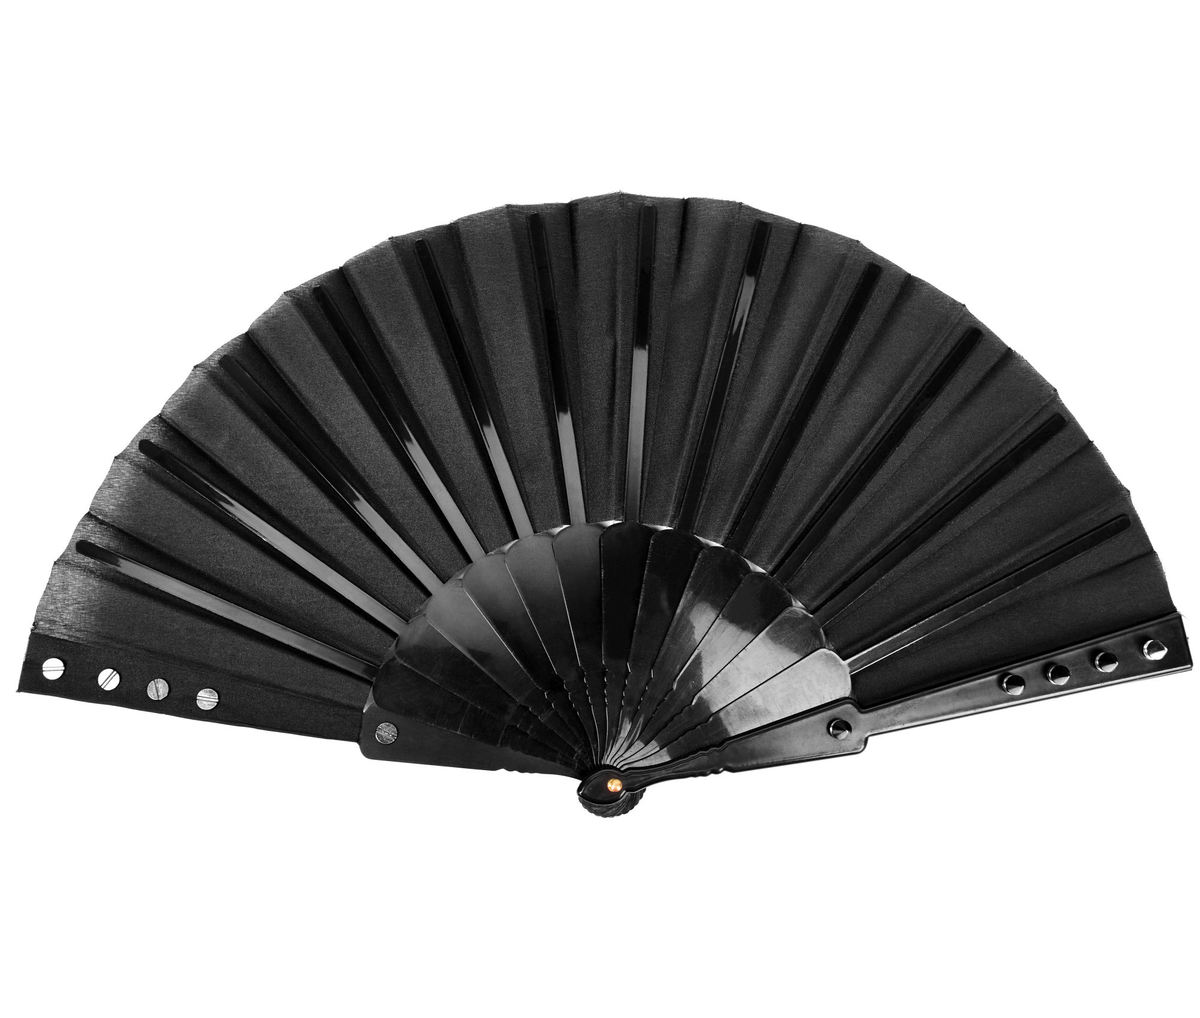 vějíř PUNK RAVE - Deviless spiked fan - WS-268QTF BK